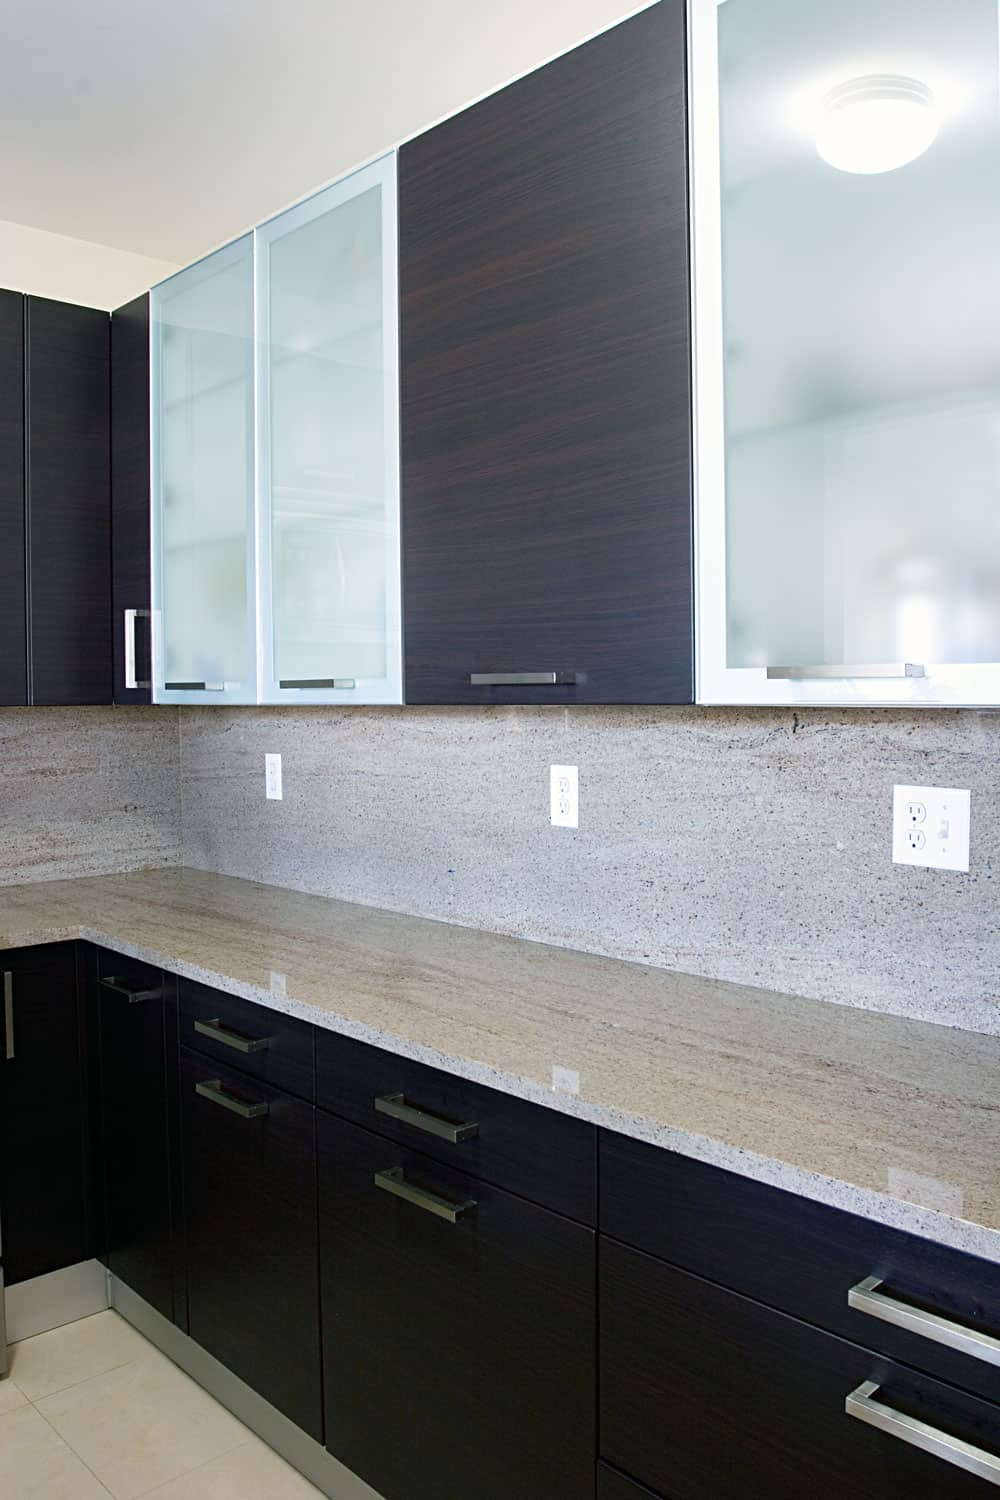 Clear wooden and glass cabinet upper doors and dotted kitchen backsplash